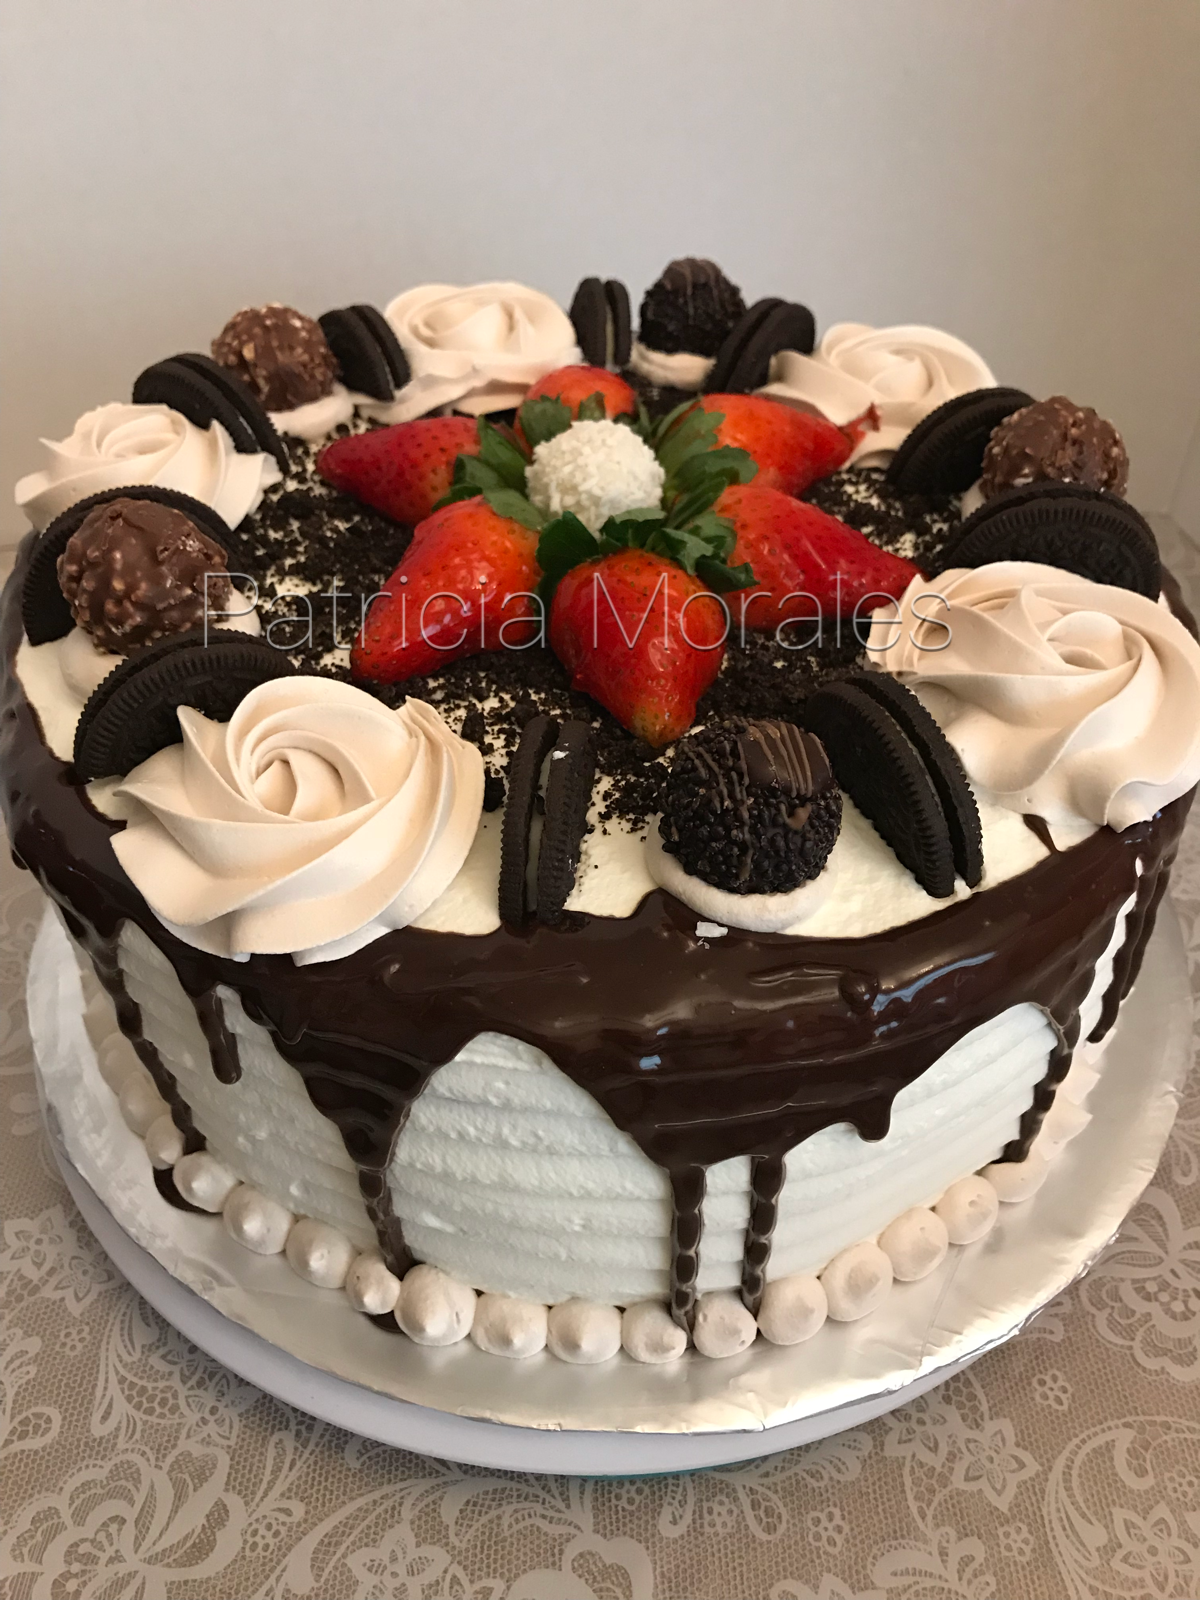 Tres Leches Cake Filled With Flan Napolitano Mocha Whipped Icing